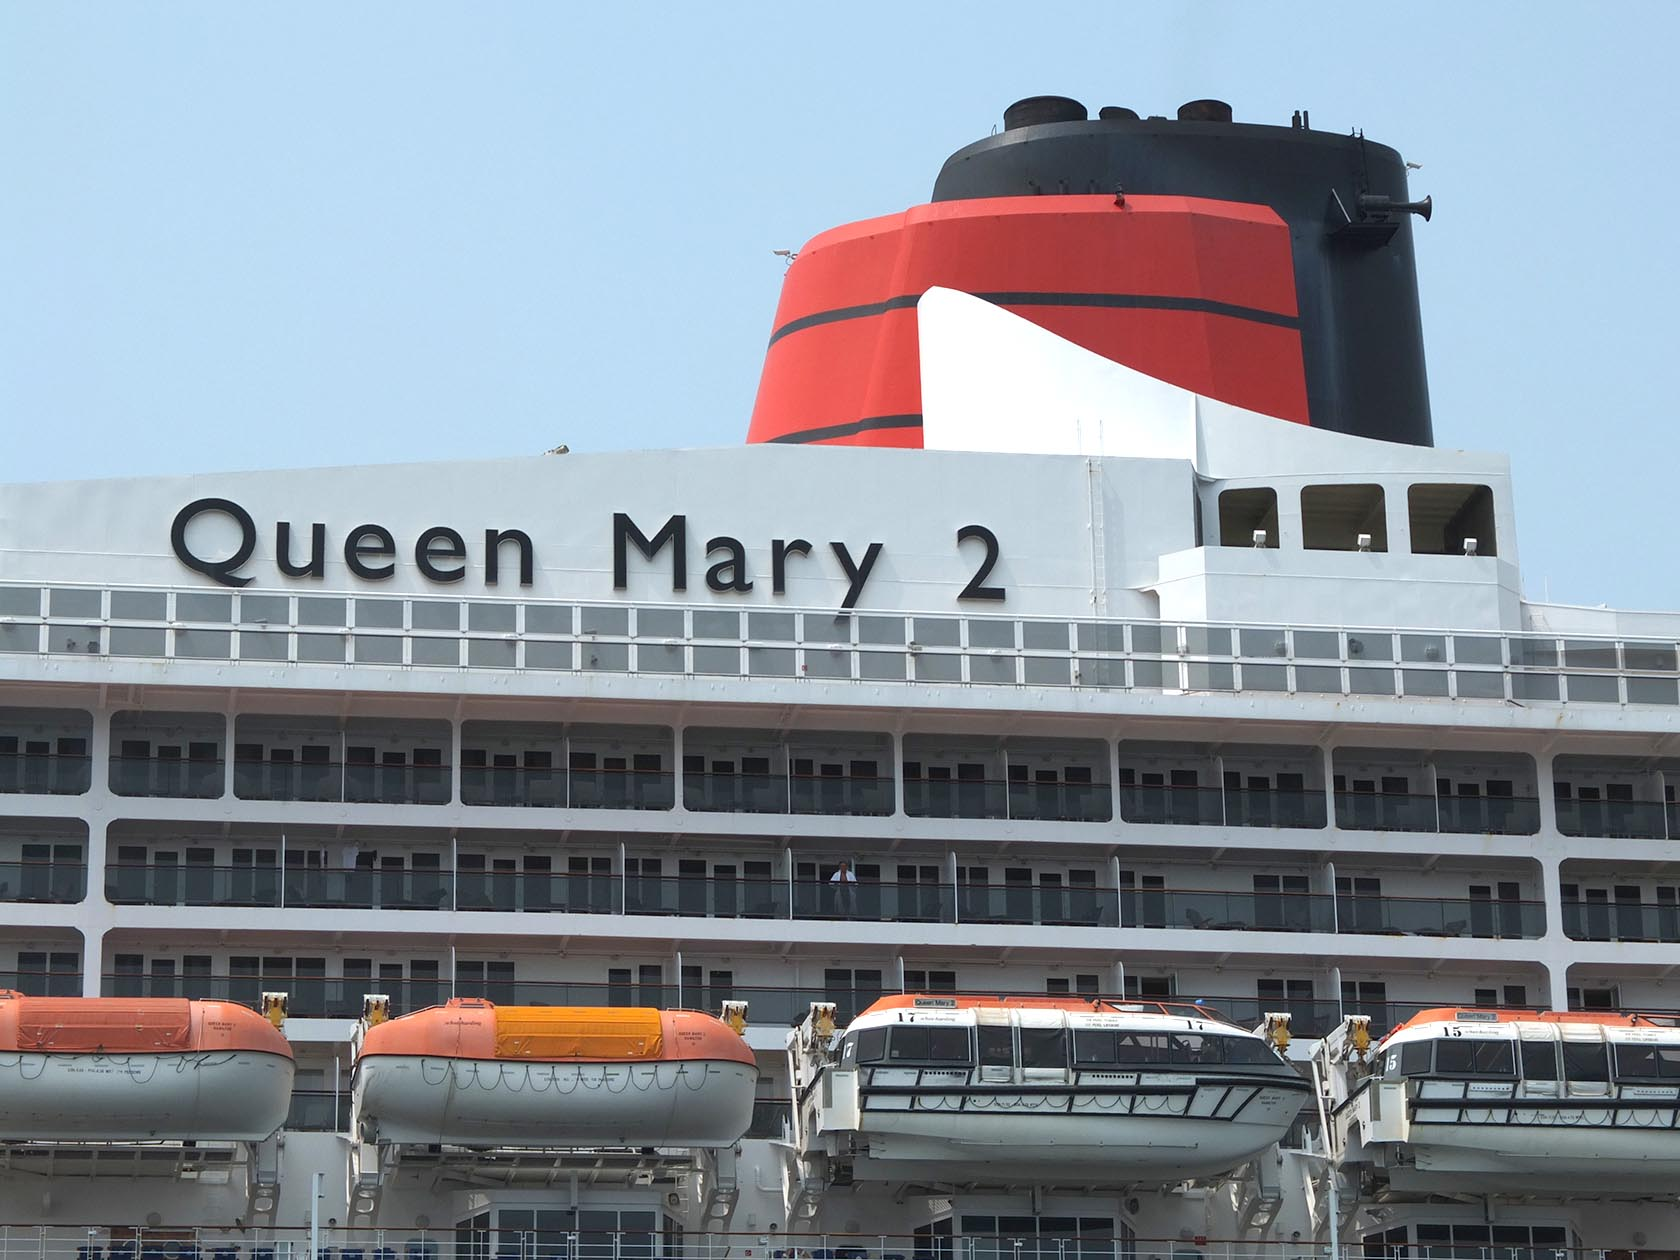 The Cunard liner Queen Mary 2 carries the legacy of founder Samuel Cunard